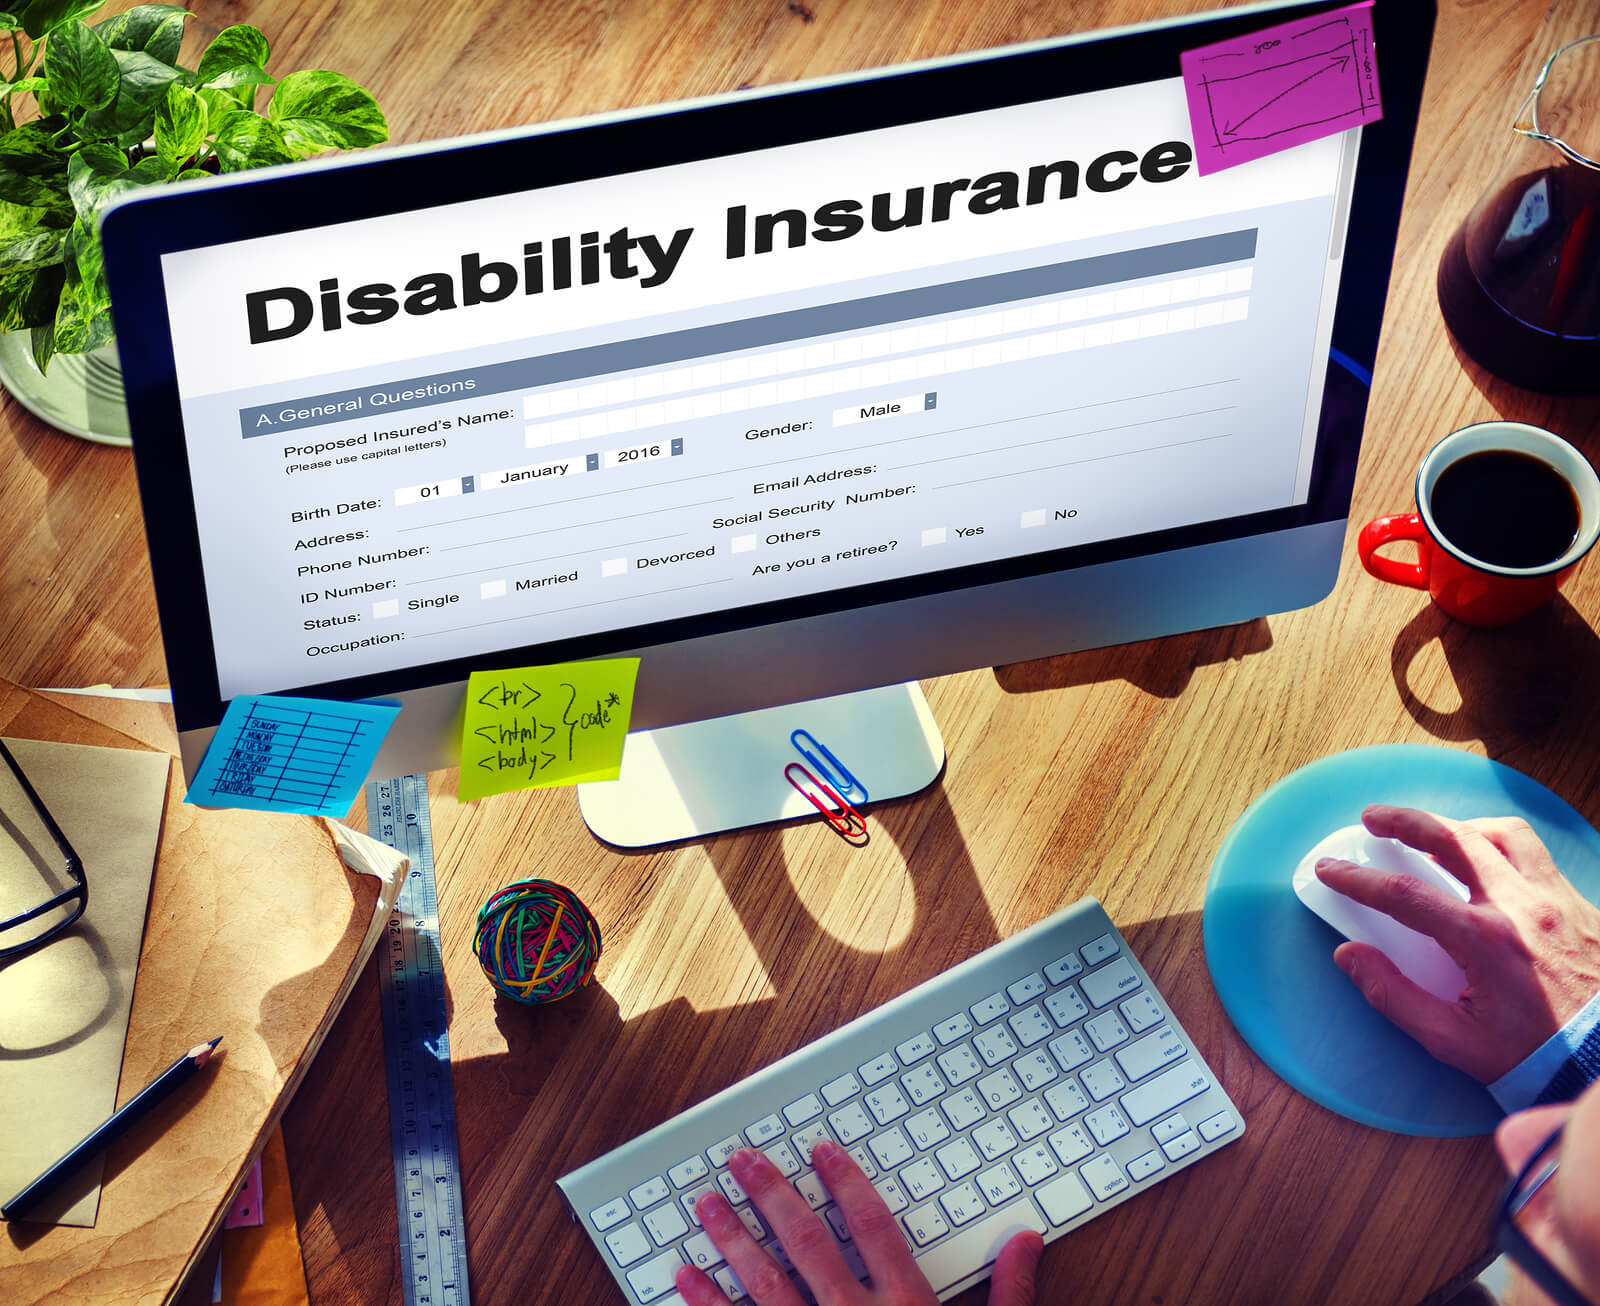 Q&A Session: The Importance of Disability Insurance